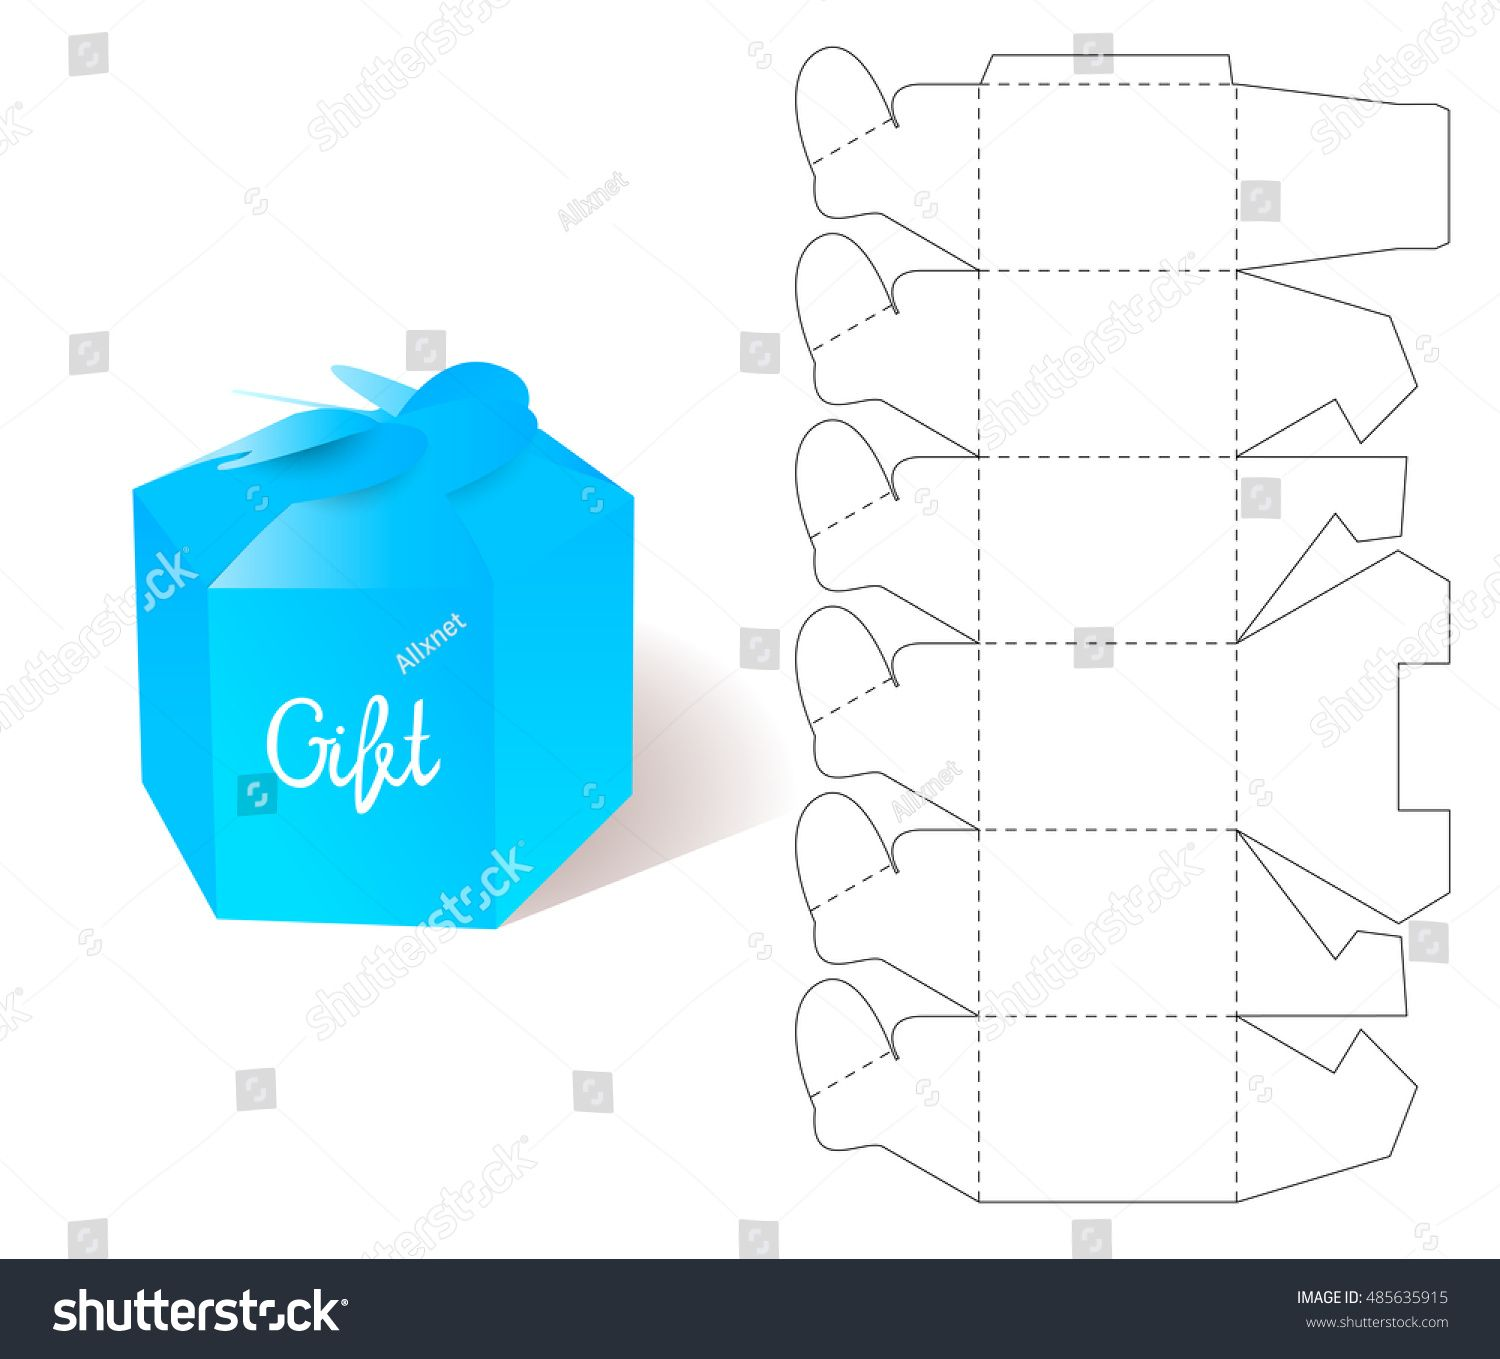 Box paper blueprint gift box craft mockup template retail paper blueprint gift box craft mockup template retail cardboard with die cut pattern malvernweather Image collections